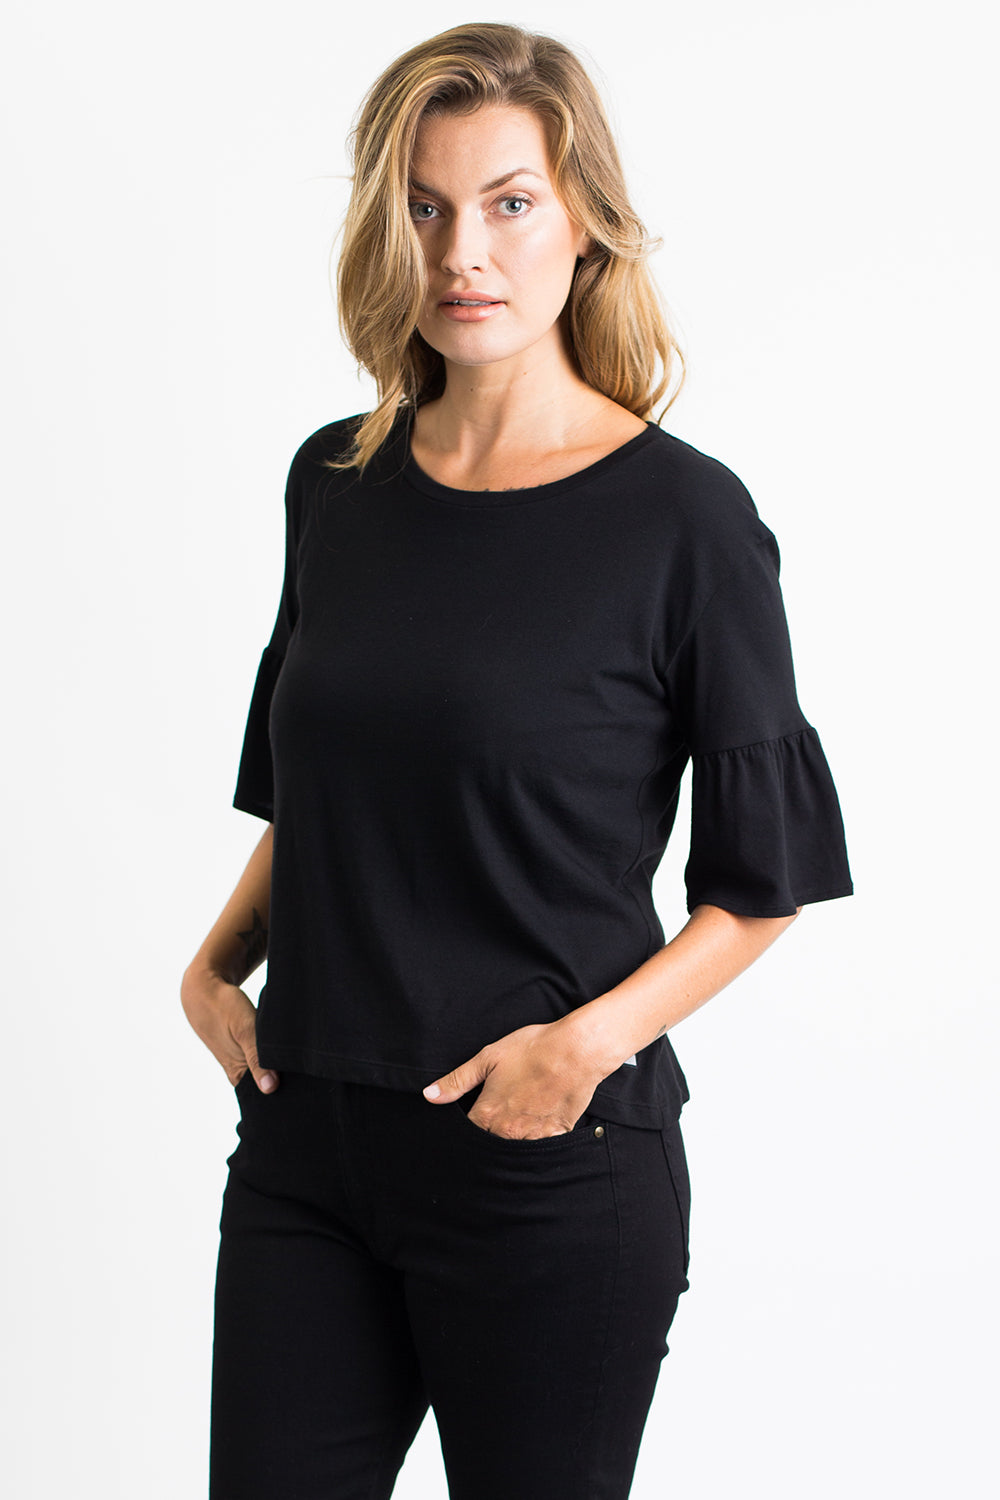 Women's 3/4 Ruffle Sleeve Tee